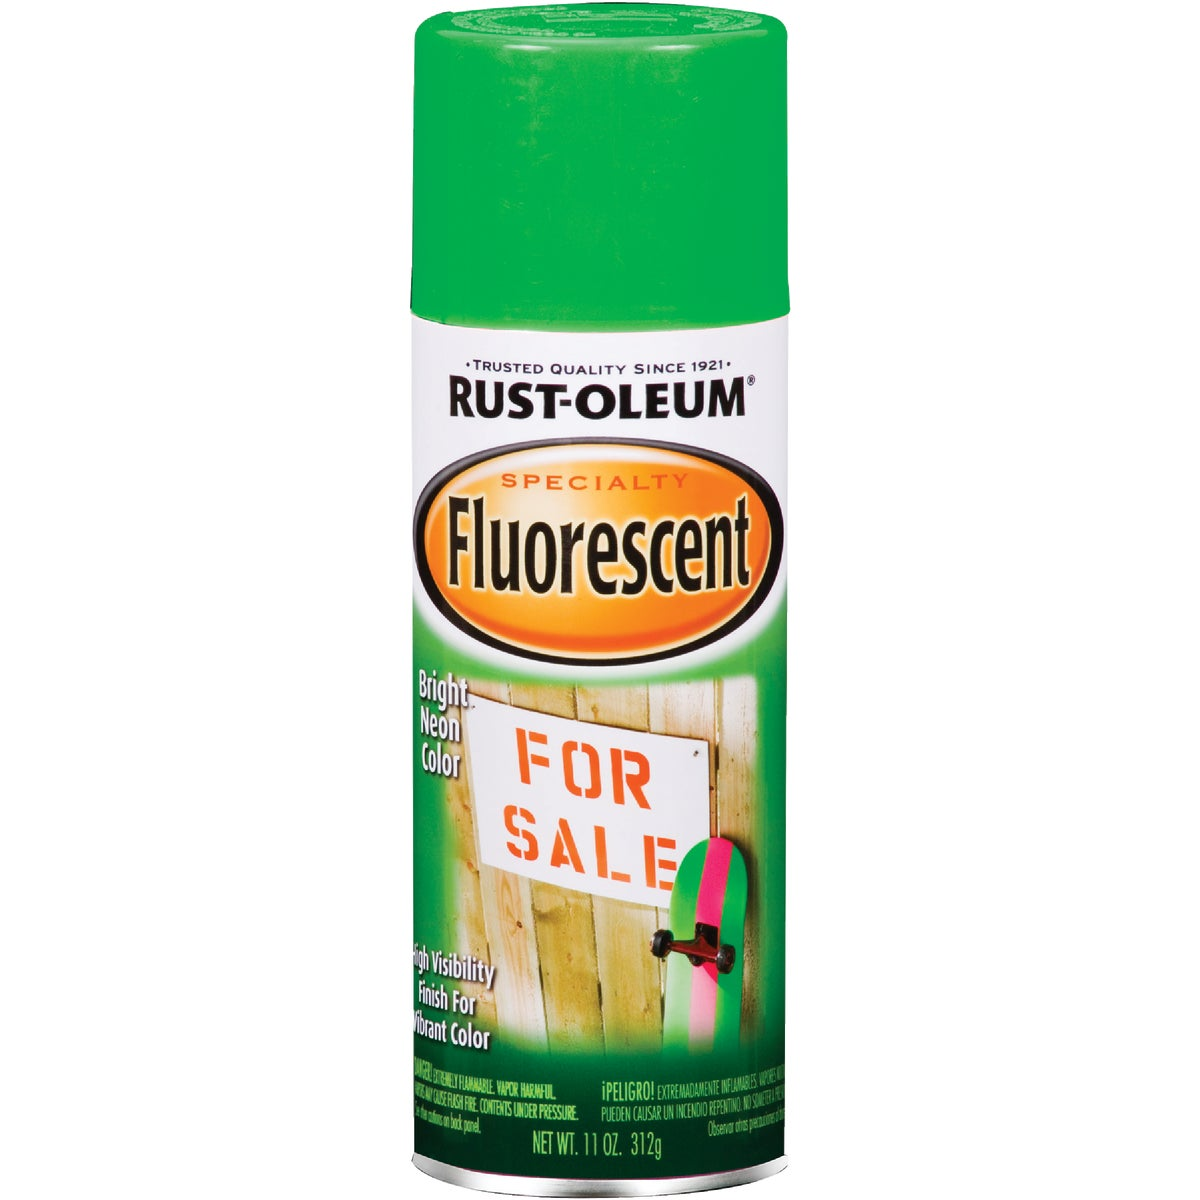 FLRSCNT GRN SPRAY PAINT - 1932-830 by Rustoleum